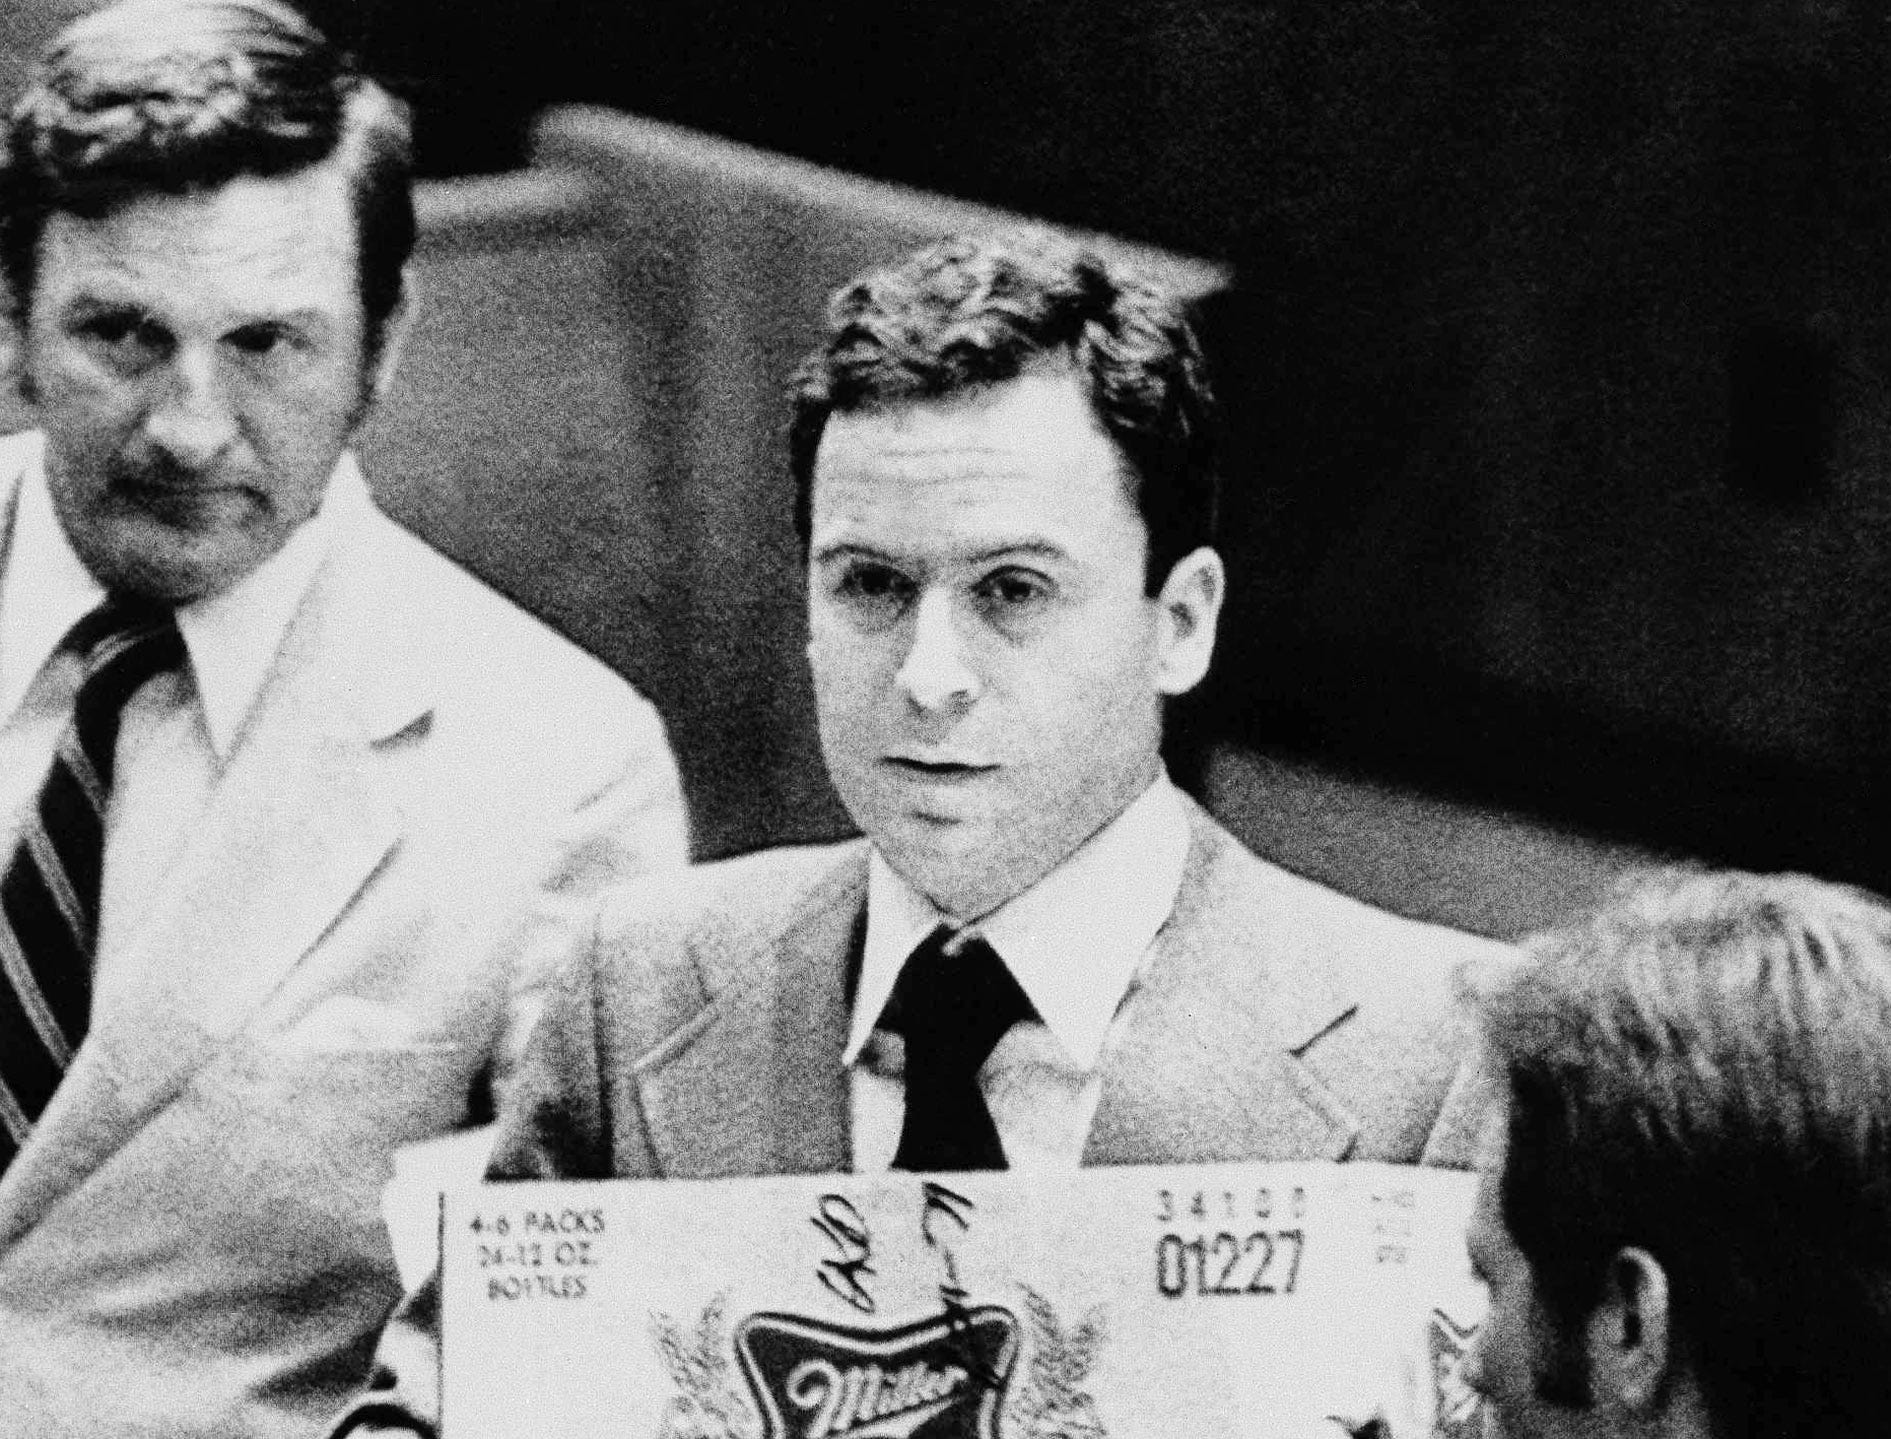 "Theodore Bundy, convicted last month on charges of slaying two Florida State University coeds, leaves court, Aug. 27, 1979, in Tallahassee with his ""beer box briefcase"" after being denied a new trial."